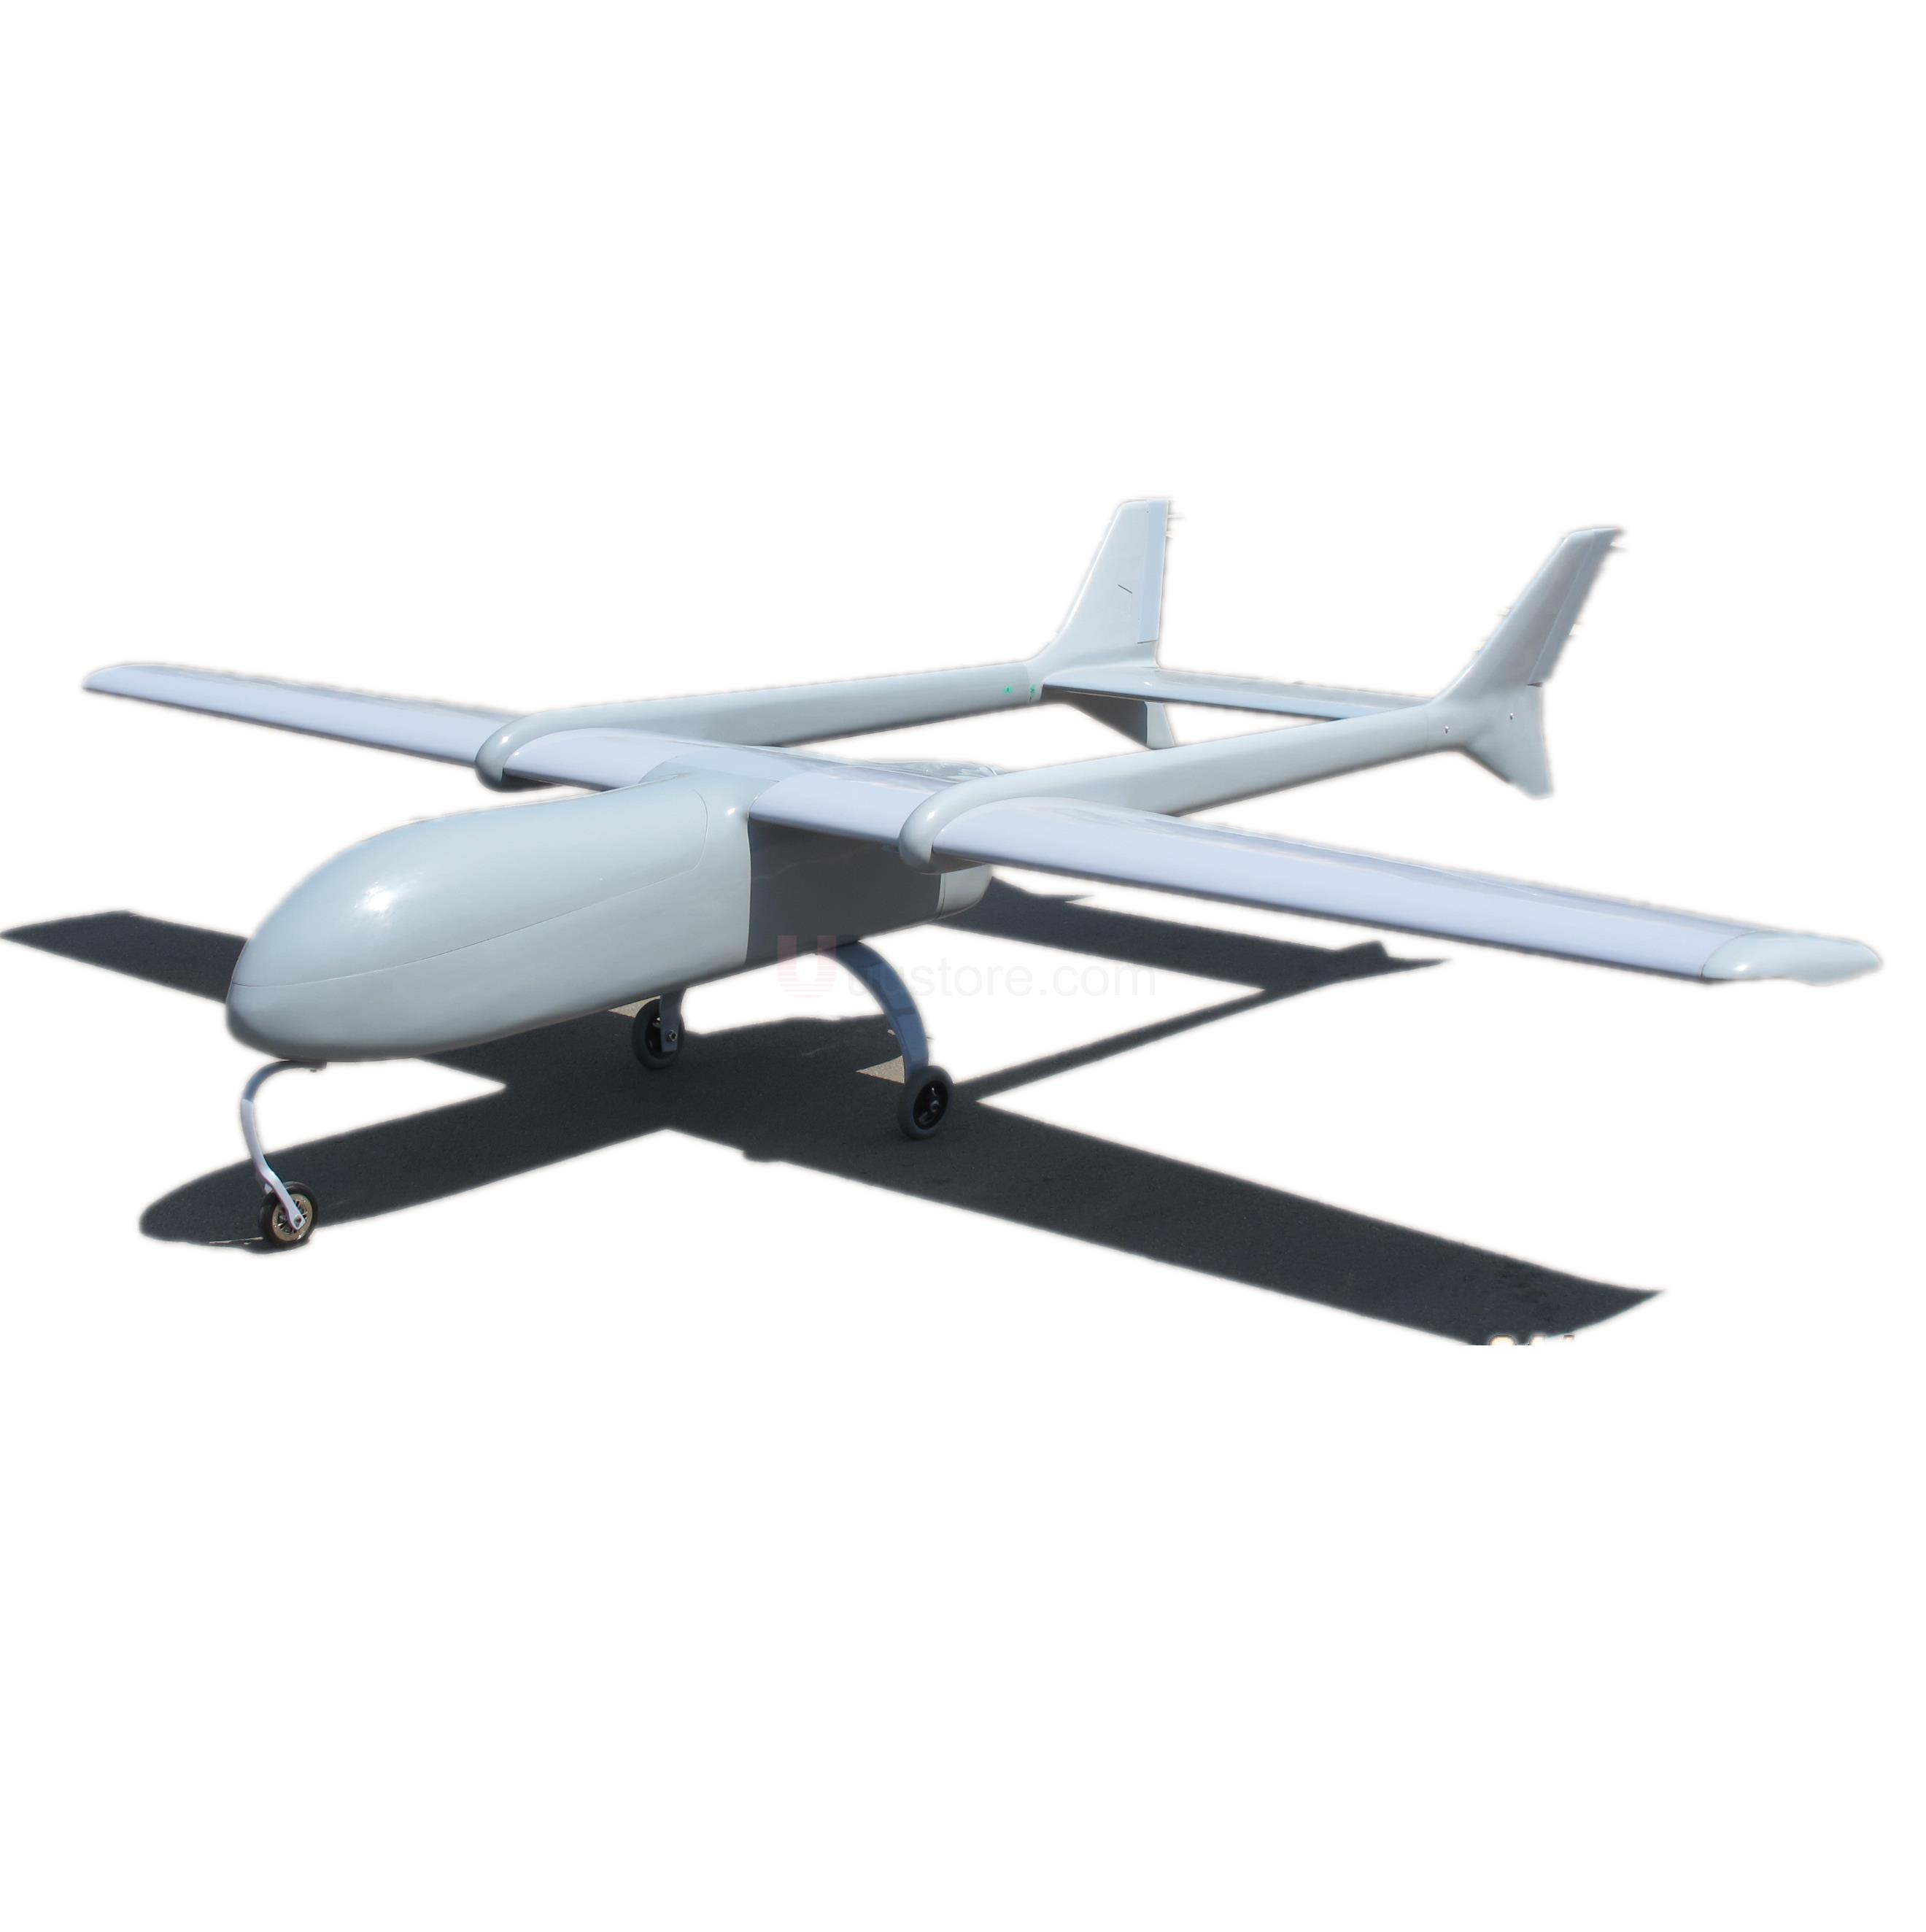 fms airplanes with Wholesale Wilga Rc Model Airplanes on 32824005864 also Fms F4u Corsair Warbird Rtf furthermore The Beechcraft Starship moreover Hsi in addition 171967408415.